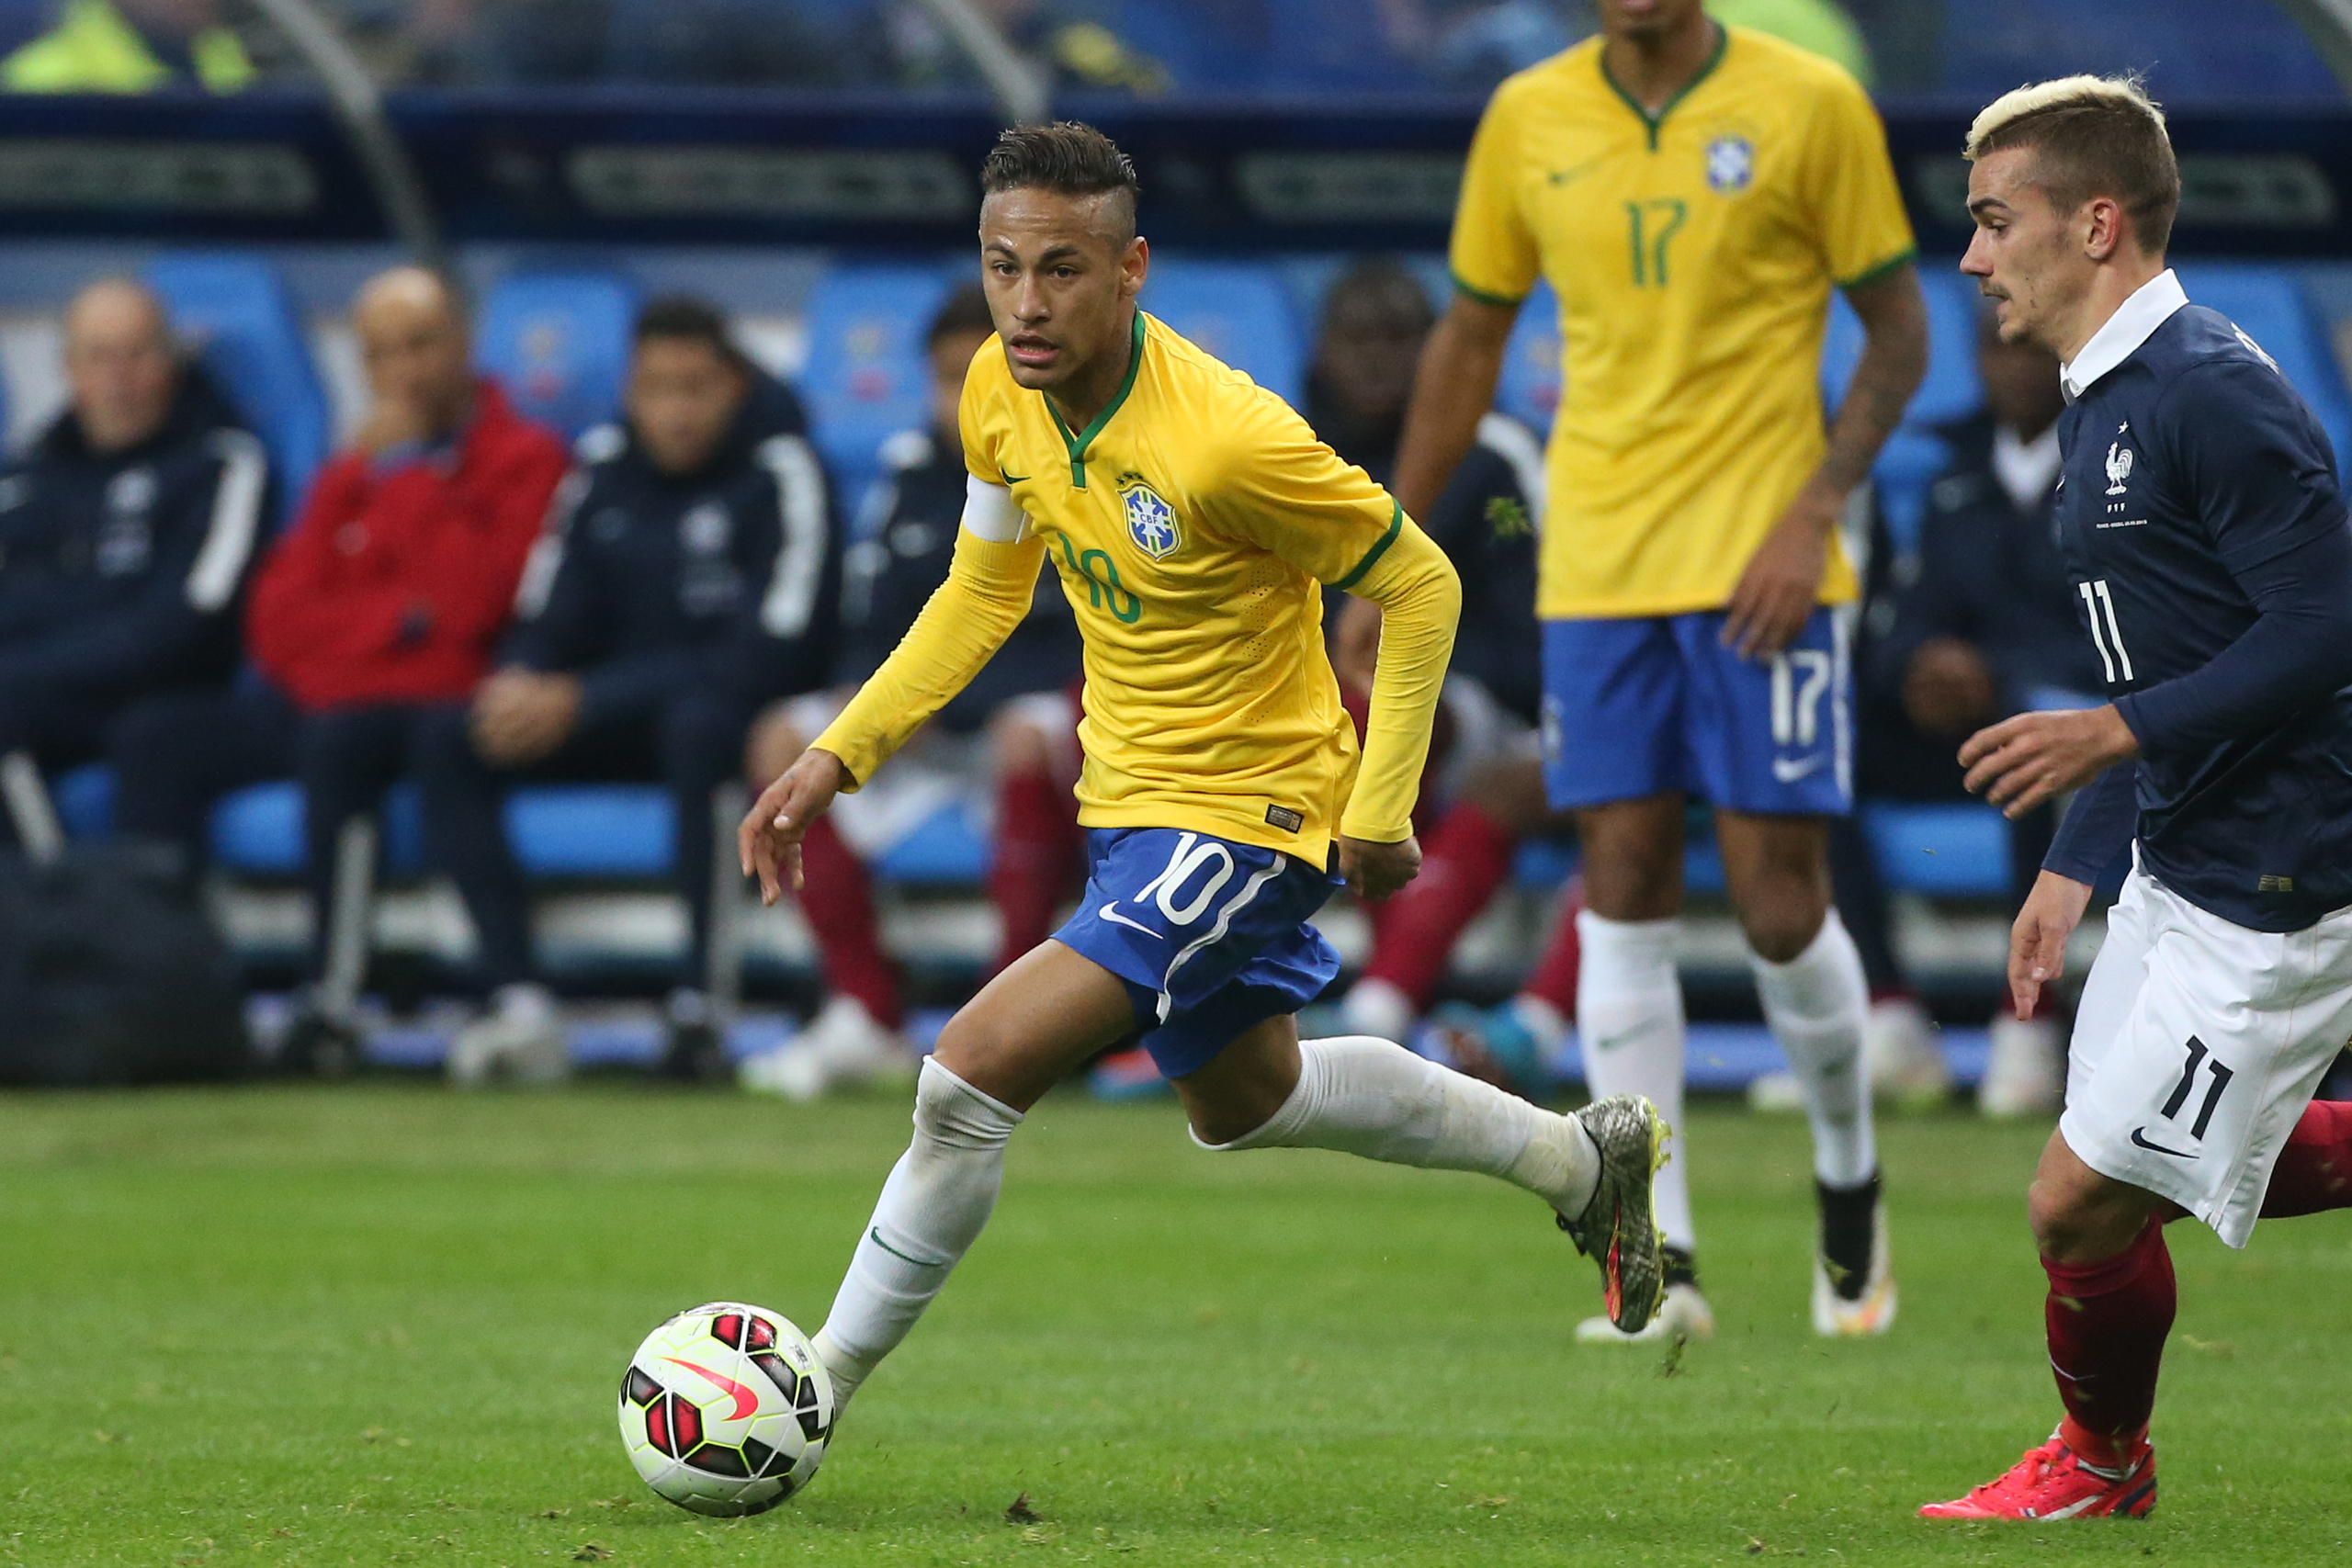 """<strong>Neymar, Soccer, Brazil</strong>In Brazil, the pain of the 2014 World Cup still sears. Germany embarrassed the host country, 7-1, in the semi-finals, sparking a national mourning period that hasn't ended. """"We will never forget,"""" says Rio resident Sergio Duarte. """"We cannot forgive.""""                                    Winning Brazil's first-ever Olympic soccer gold won't erase that hurtful memory. But in this soccer-mad nation, a home-field triumph would go a long way toward purging the ghosts. Much of the burden for that falls on Neymar, the Barcelona star who will be Brazil's face of the Games. Considered a potential heir to Pelé, he missed the World Cup disgrace with fractured vertebrae. Should he lead Brazil past defending champion Mexico and deliver gold in Rio, it will be more than redemption. Brazil will cheer its favorite game again, and Neymar will solidify his legend. —Sean Gregory"""